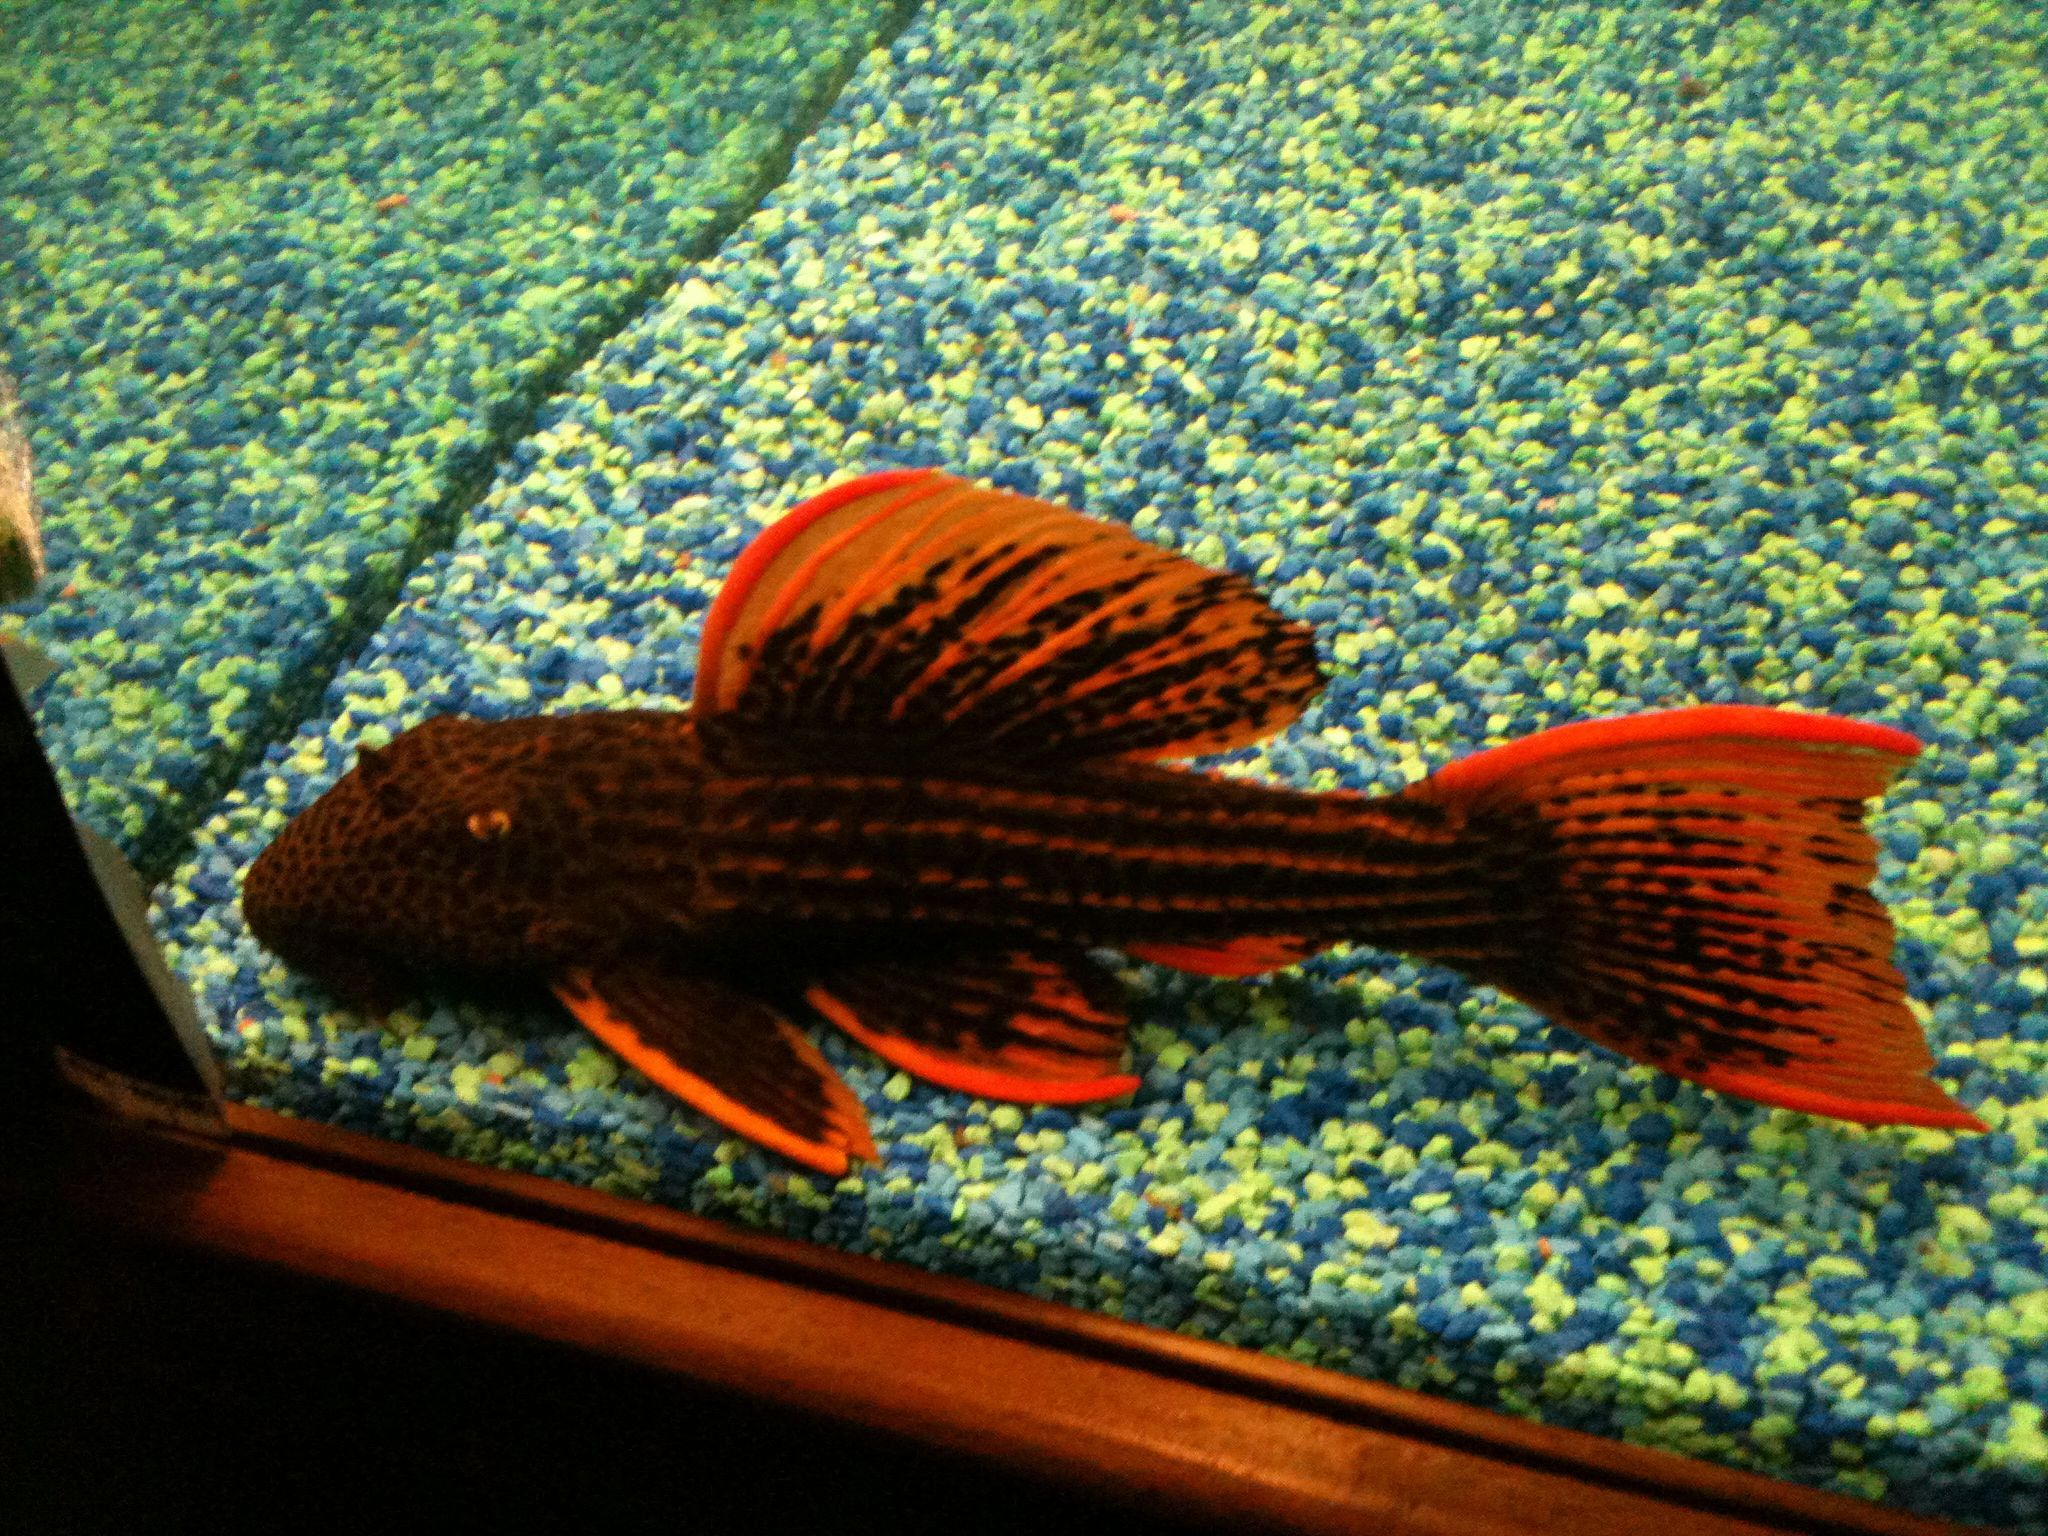 Pin On L183 Pleco For Sale